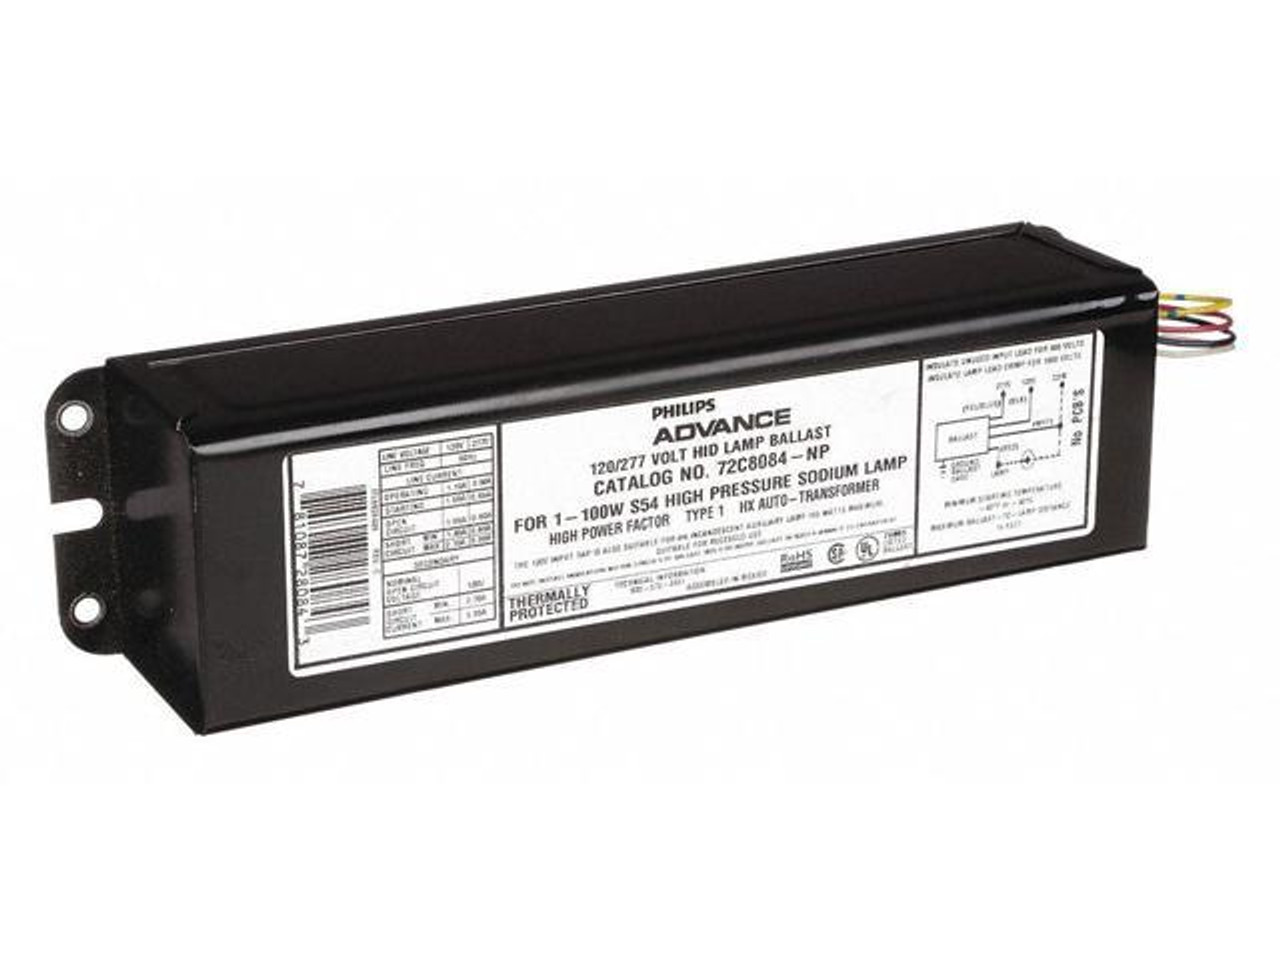 ADVANCE 71A5390-001D CORE /& BALLAST 1-100W M90 METAL HALIDE 120V//208V//240V//277V